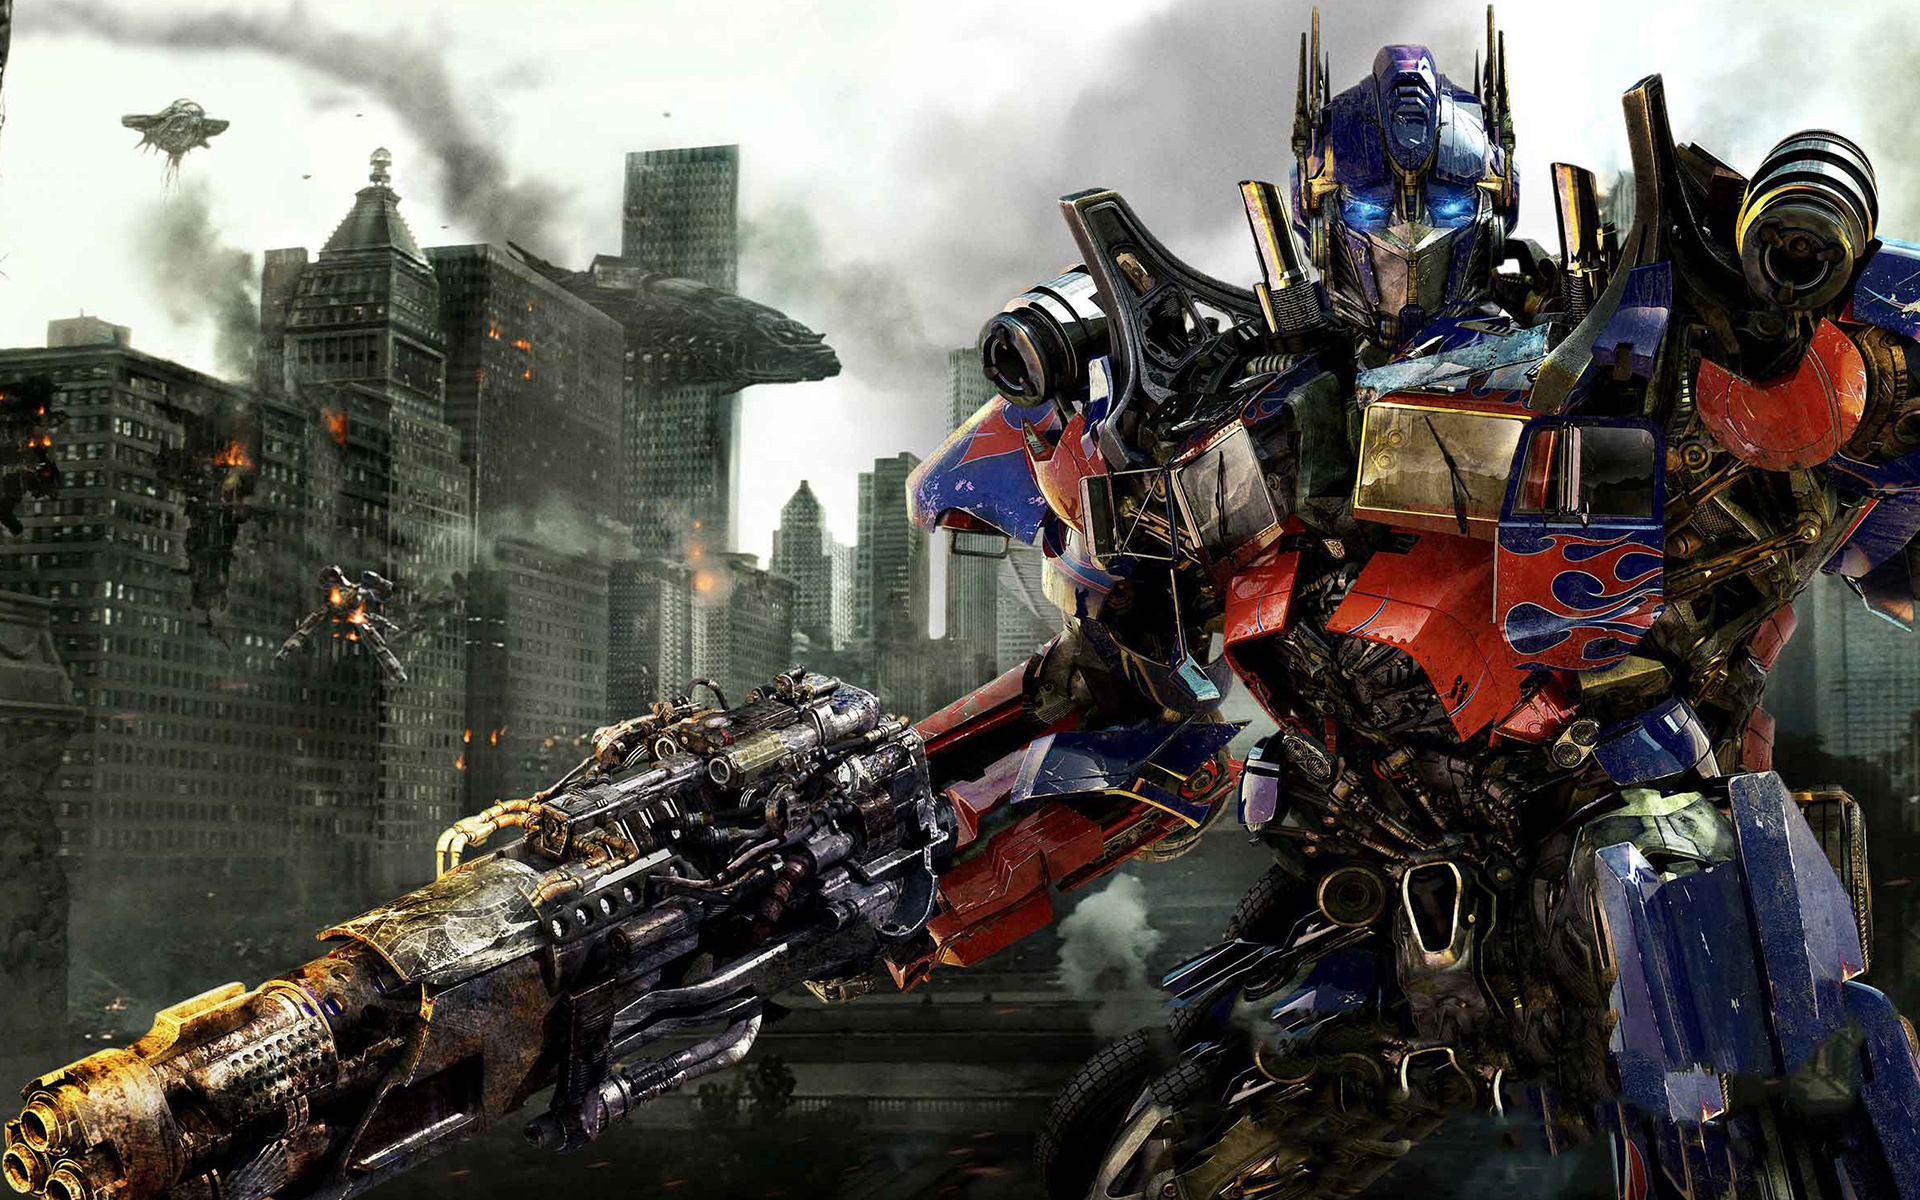 HQ Transformers Wallpapers | File 1050.39Kb